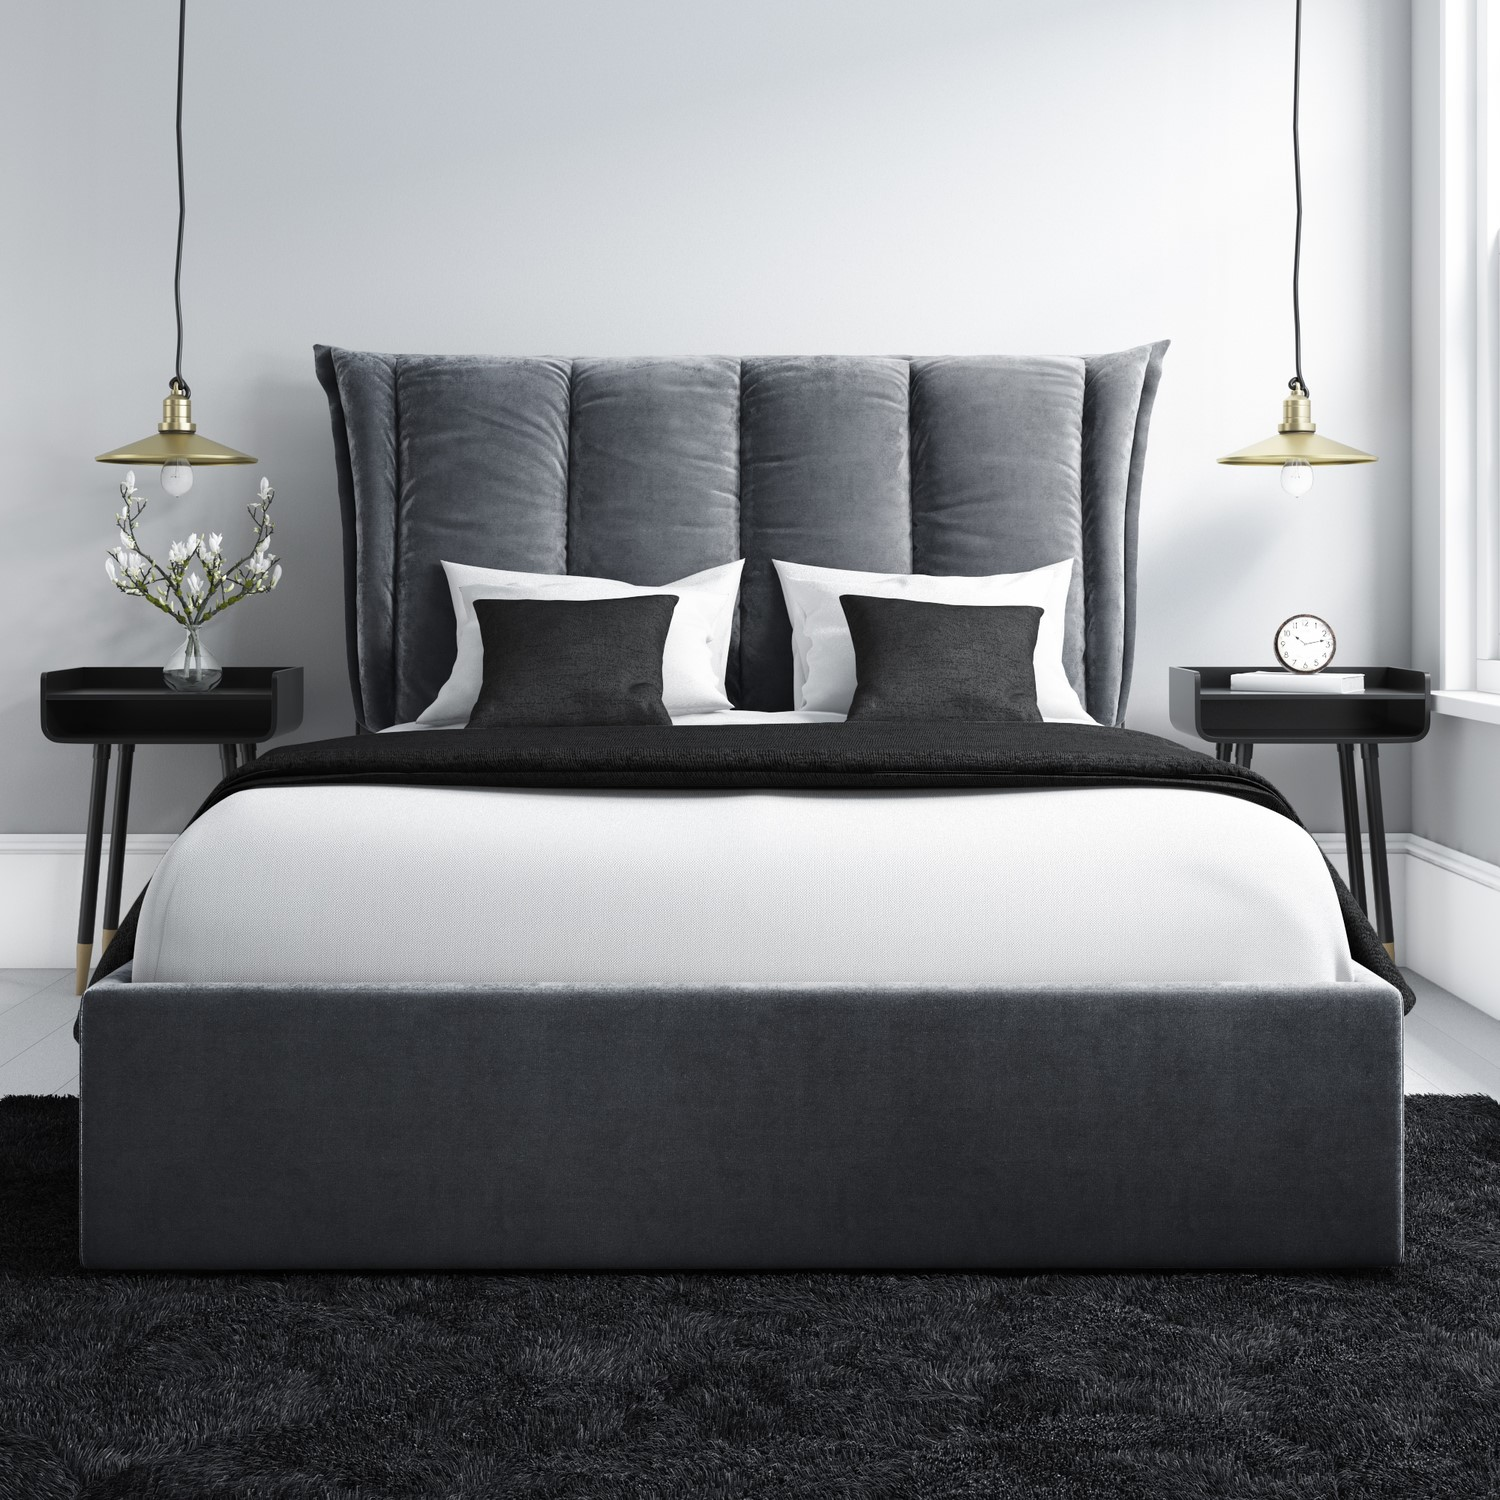 Maddox King Size Ottoman Bed With Cushioned Headboard In Silver Grey Velvet